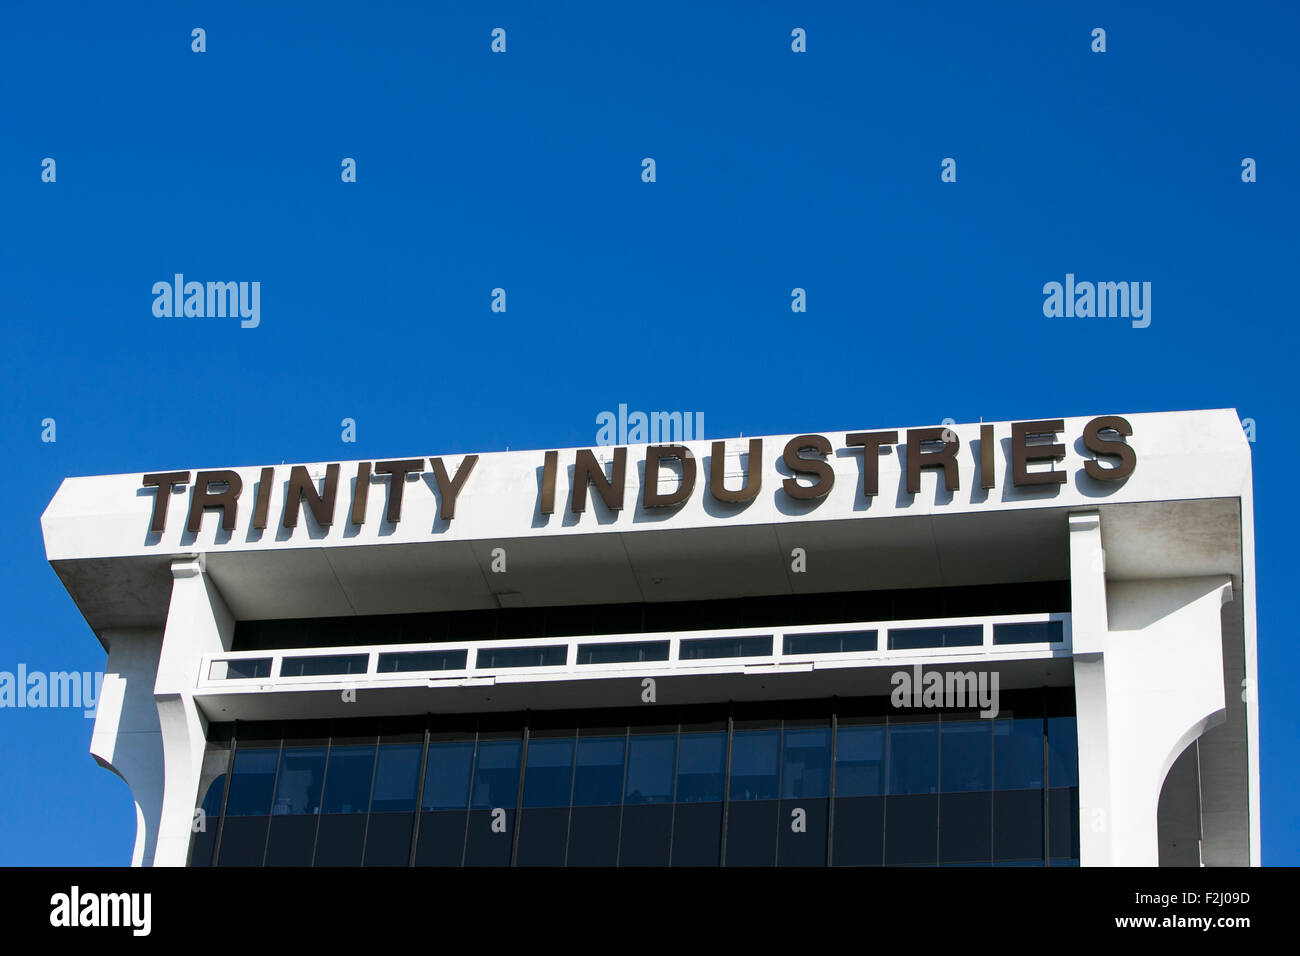 A logo sign outside of the headquarters of Trinity Industries Inc., in Dallas, Texas on September 12, 2015. - Stock Image